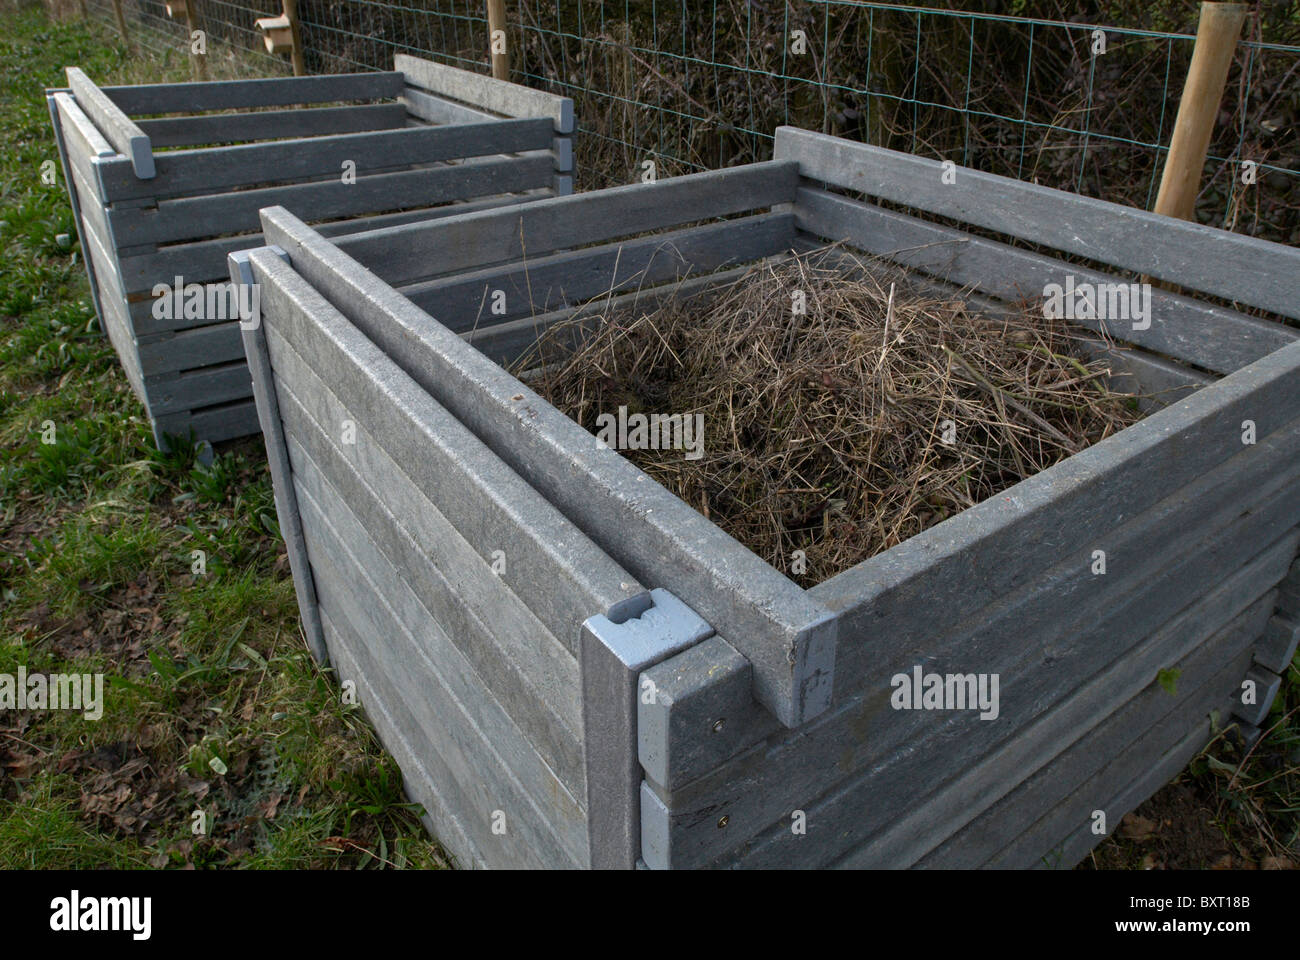 compost stockfotos compost bilder alamy. Black Bedroom Furniture Sets. Home Design Ideas